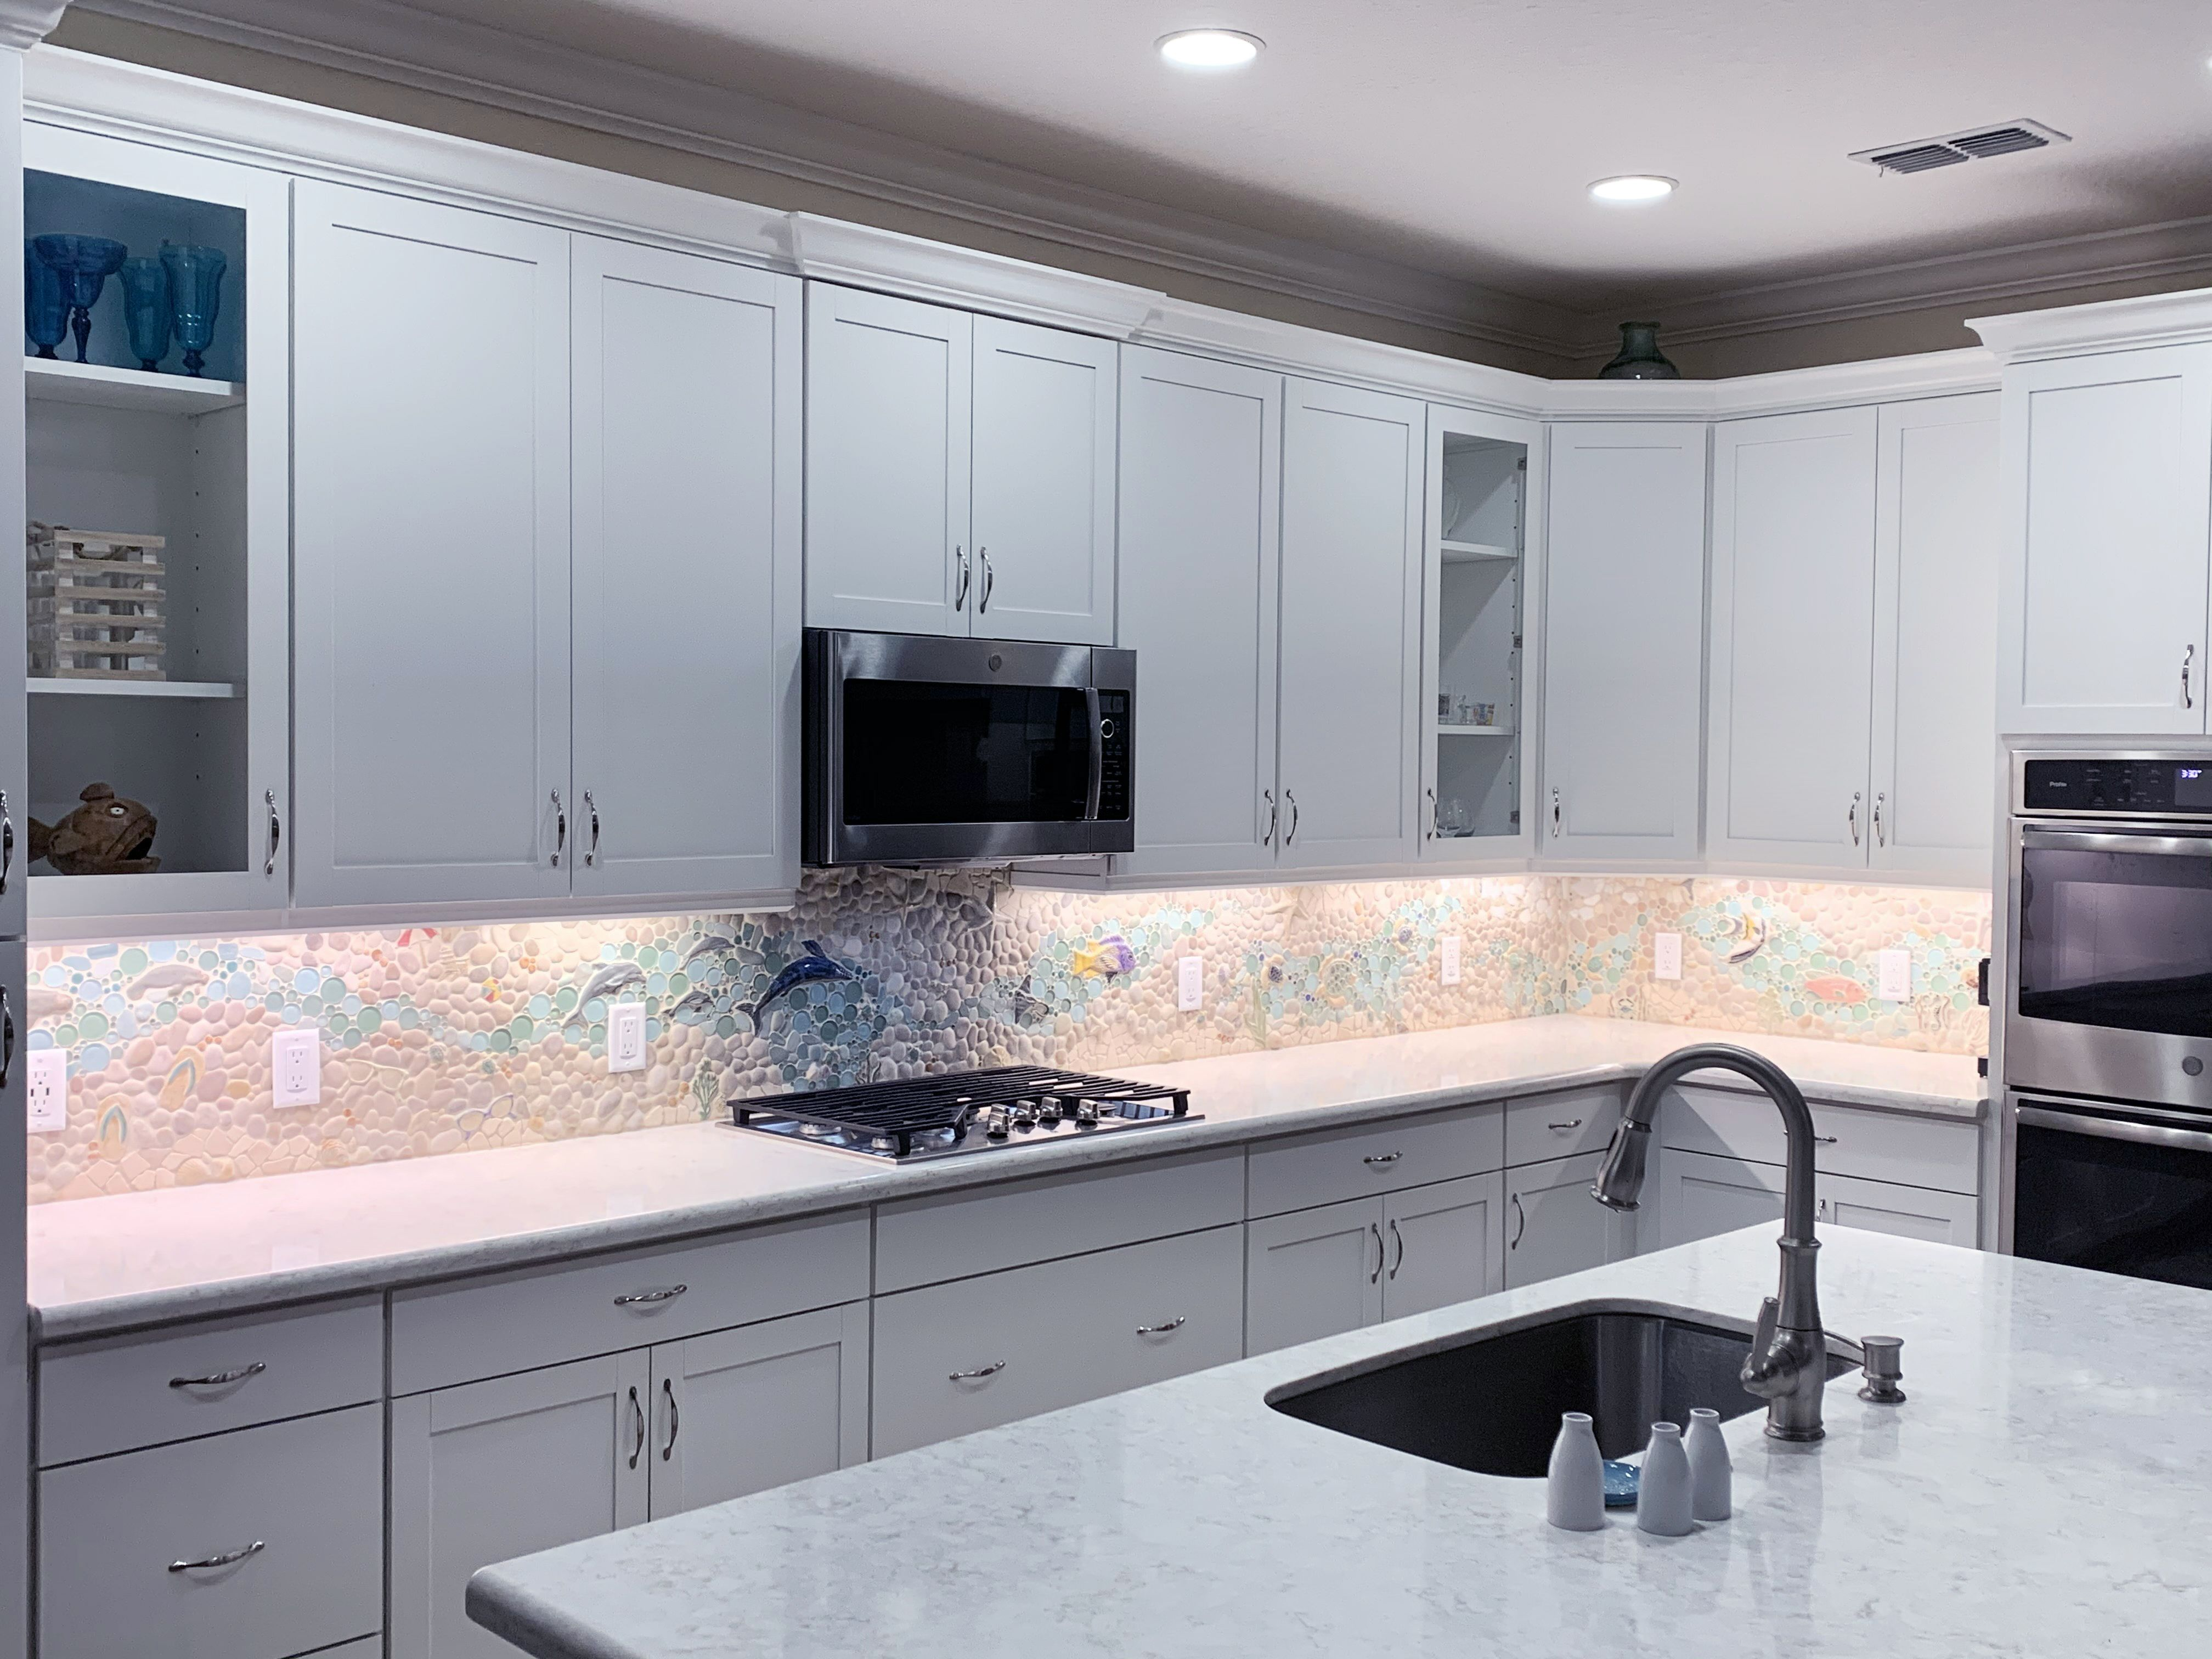 This Custom Nautical Mosaic Kitchen Backsplash Was Made With Our Medley Of Round Glass Na In 2020 With Images Mosaic Backsplash Kitchen Kitchen Installation Unique Tile